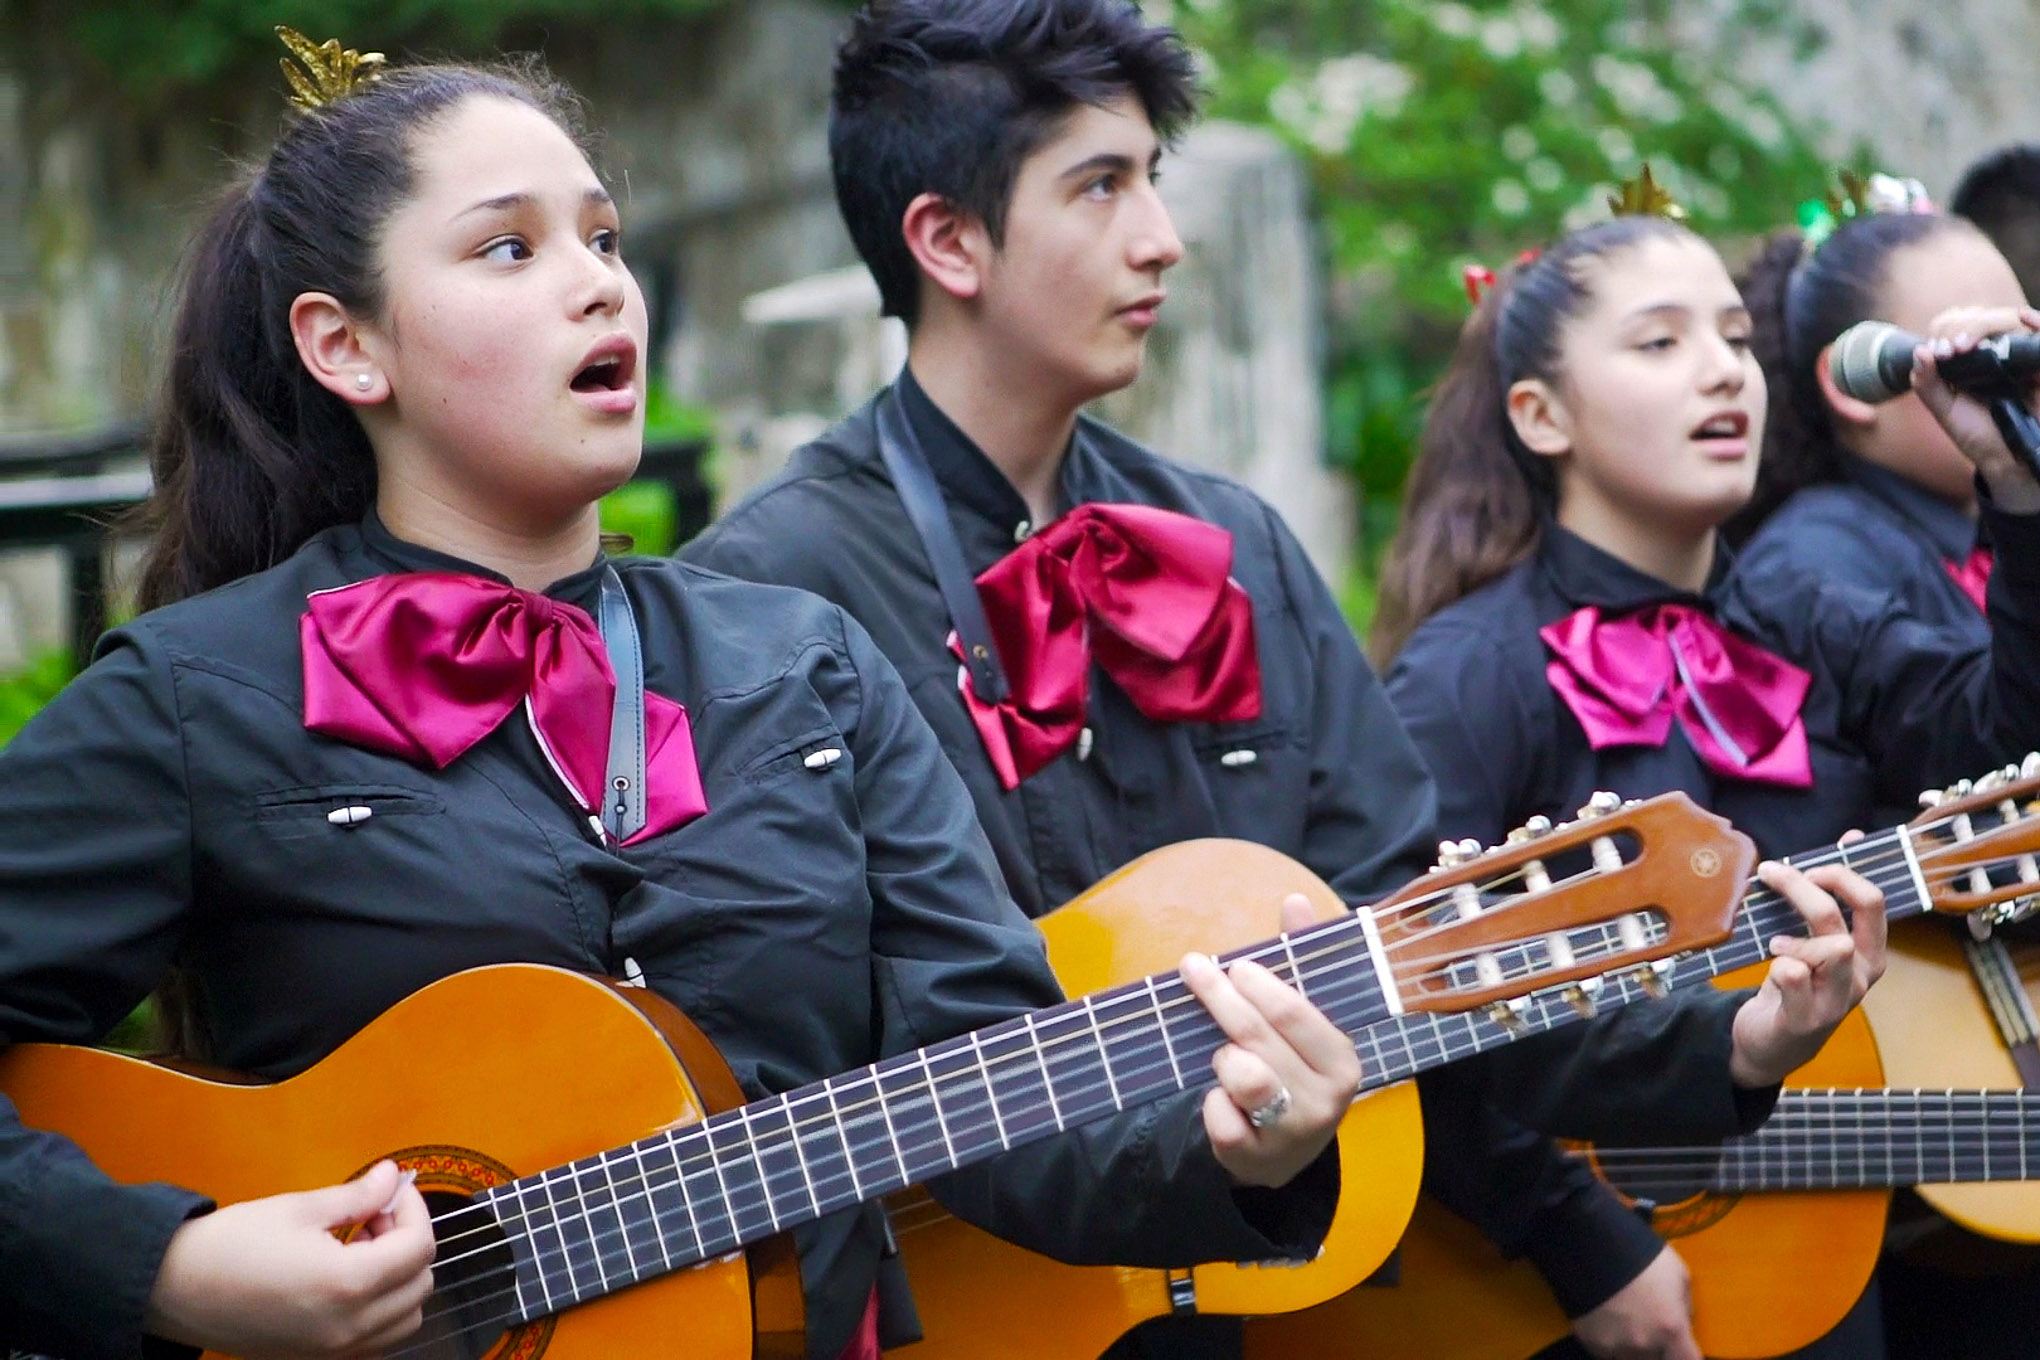 Wheatley Middle School students perform on a river barge along the Riverwalk as part of the Ford Mariachi Festival. Photo by Kathryn Boyd-Batstone